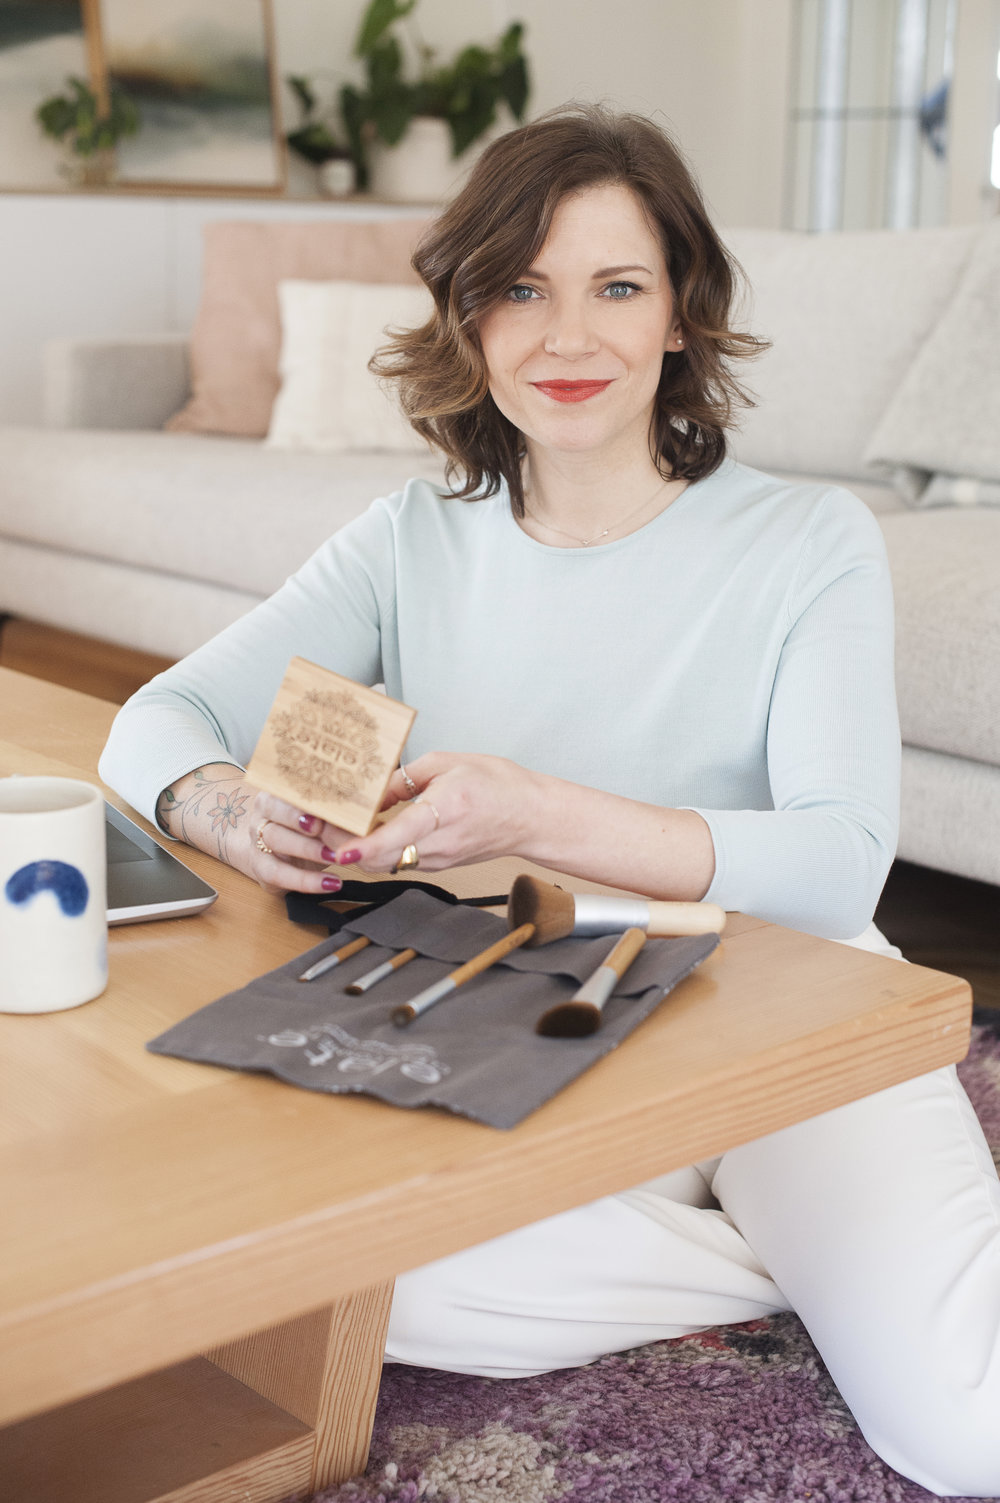 Image:Melodie Reynolds, Founder of Elate Cosmetics